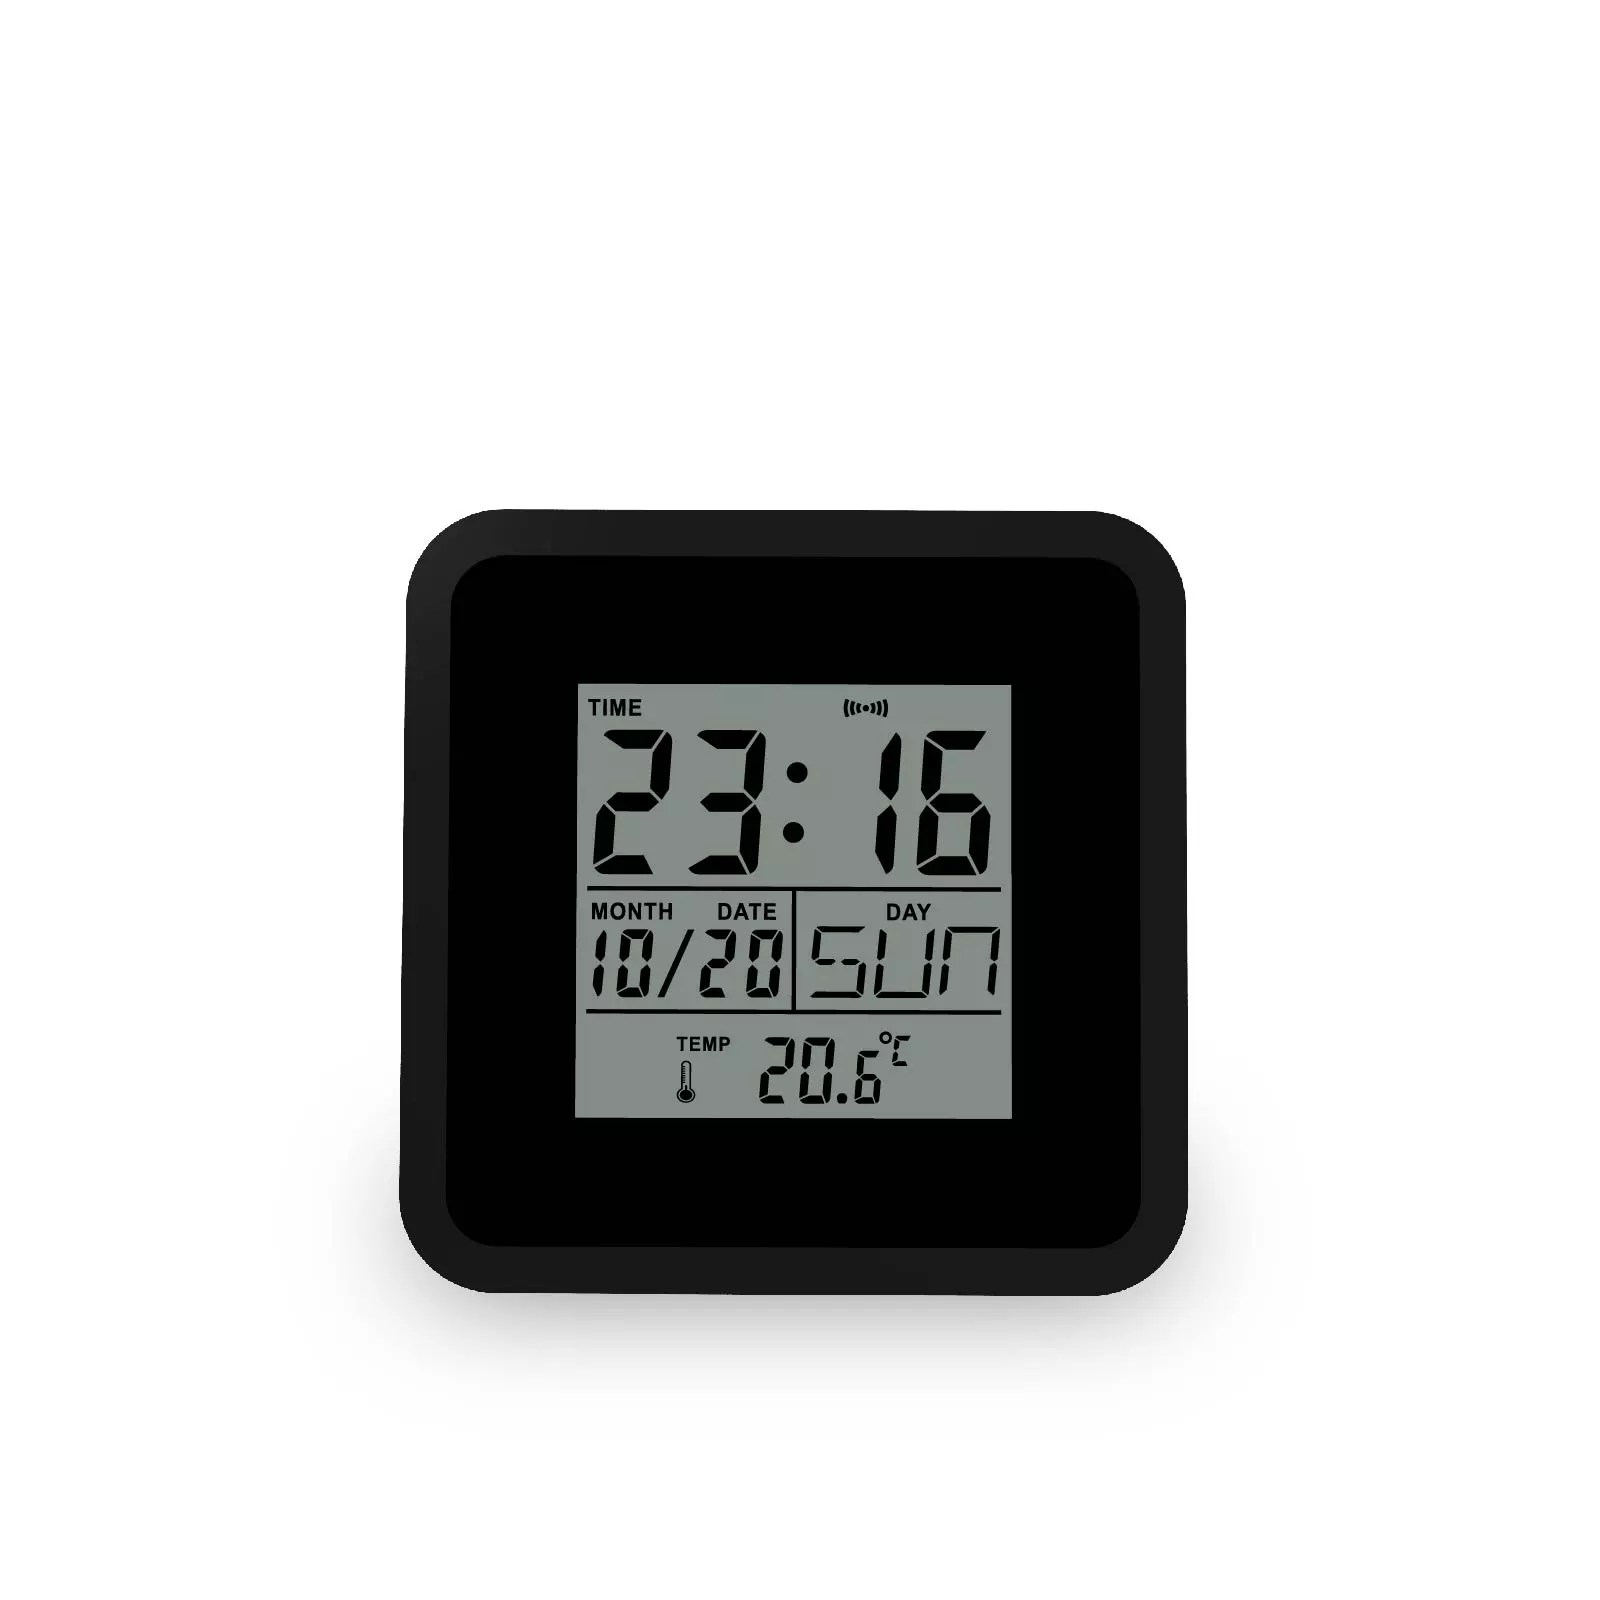 Standuhr Digital Digitale Multifunktions Standuhr Buy Standuhr Multifunktions Standuhr Holz Tisch Uhr Product On Alibaba